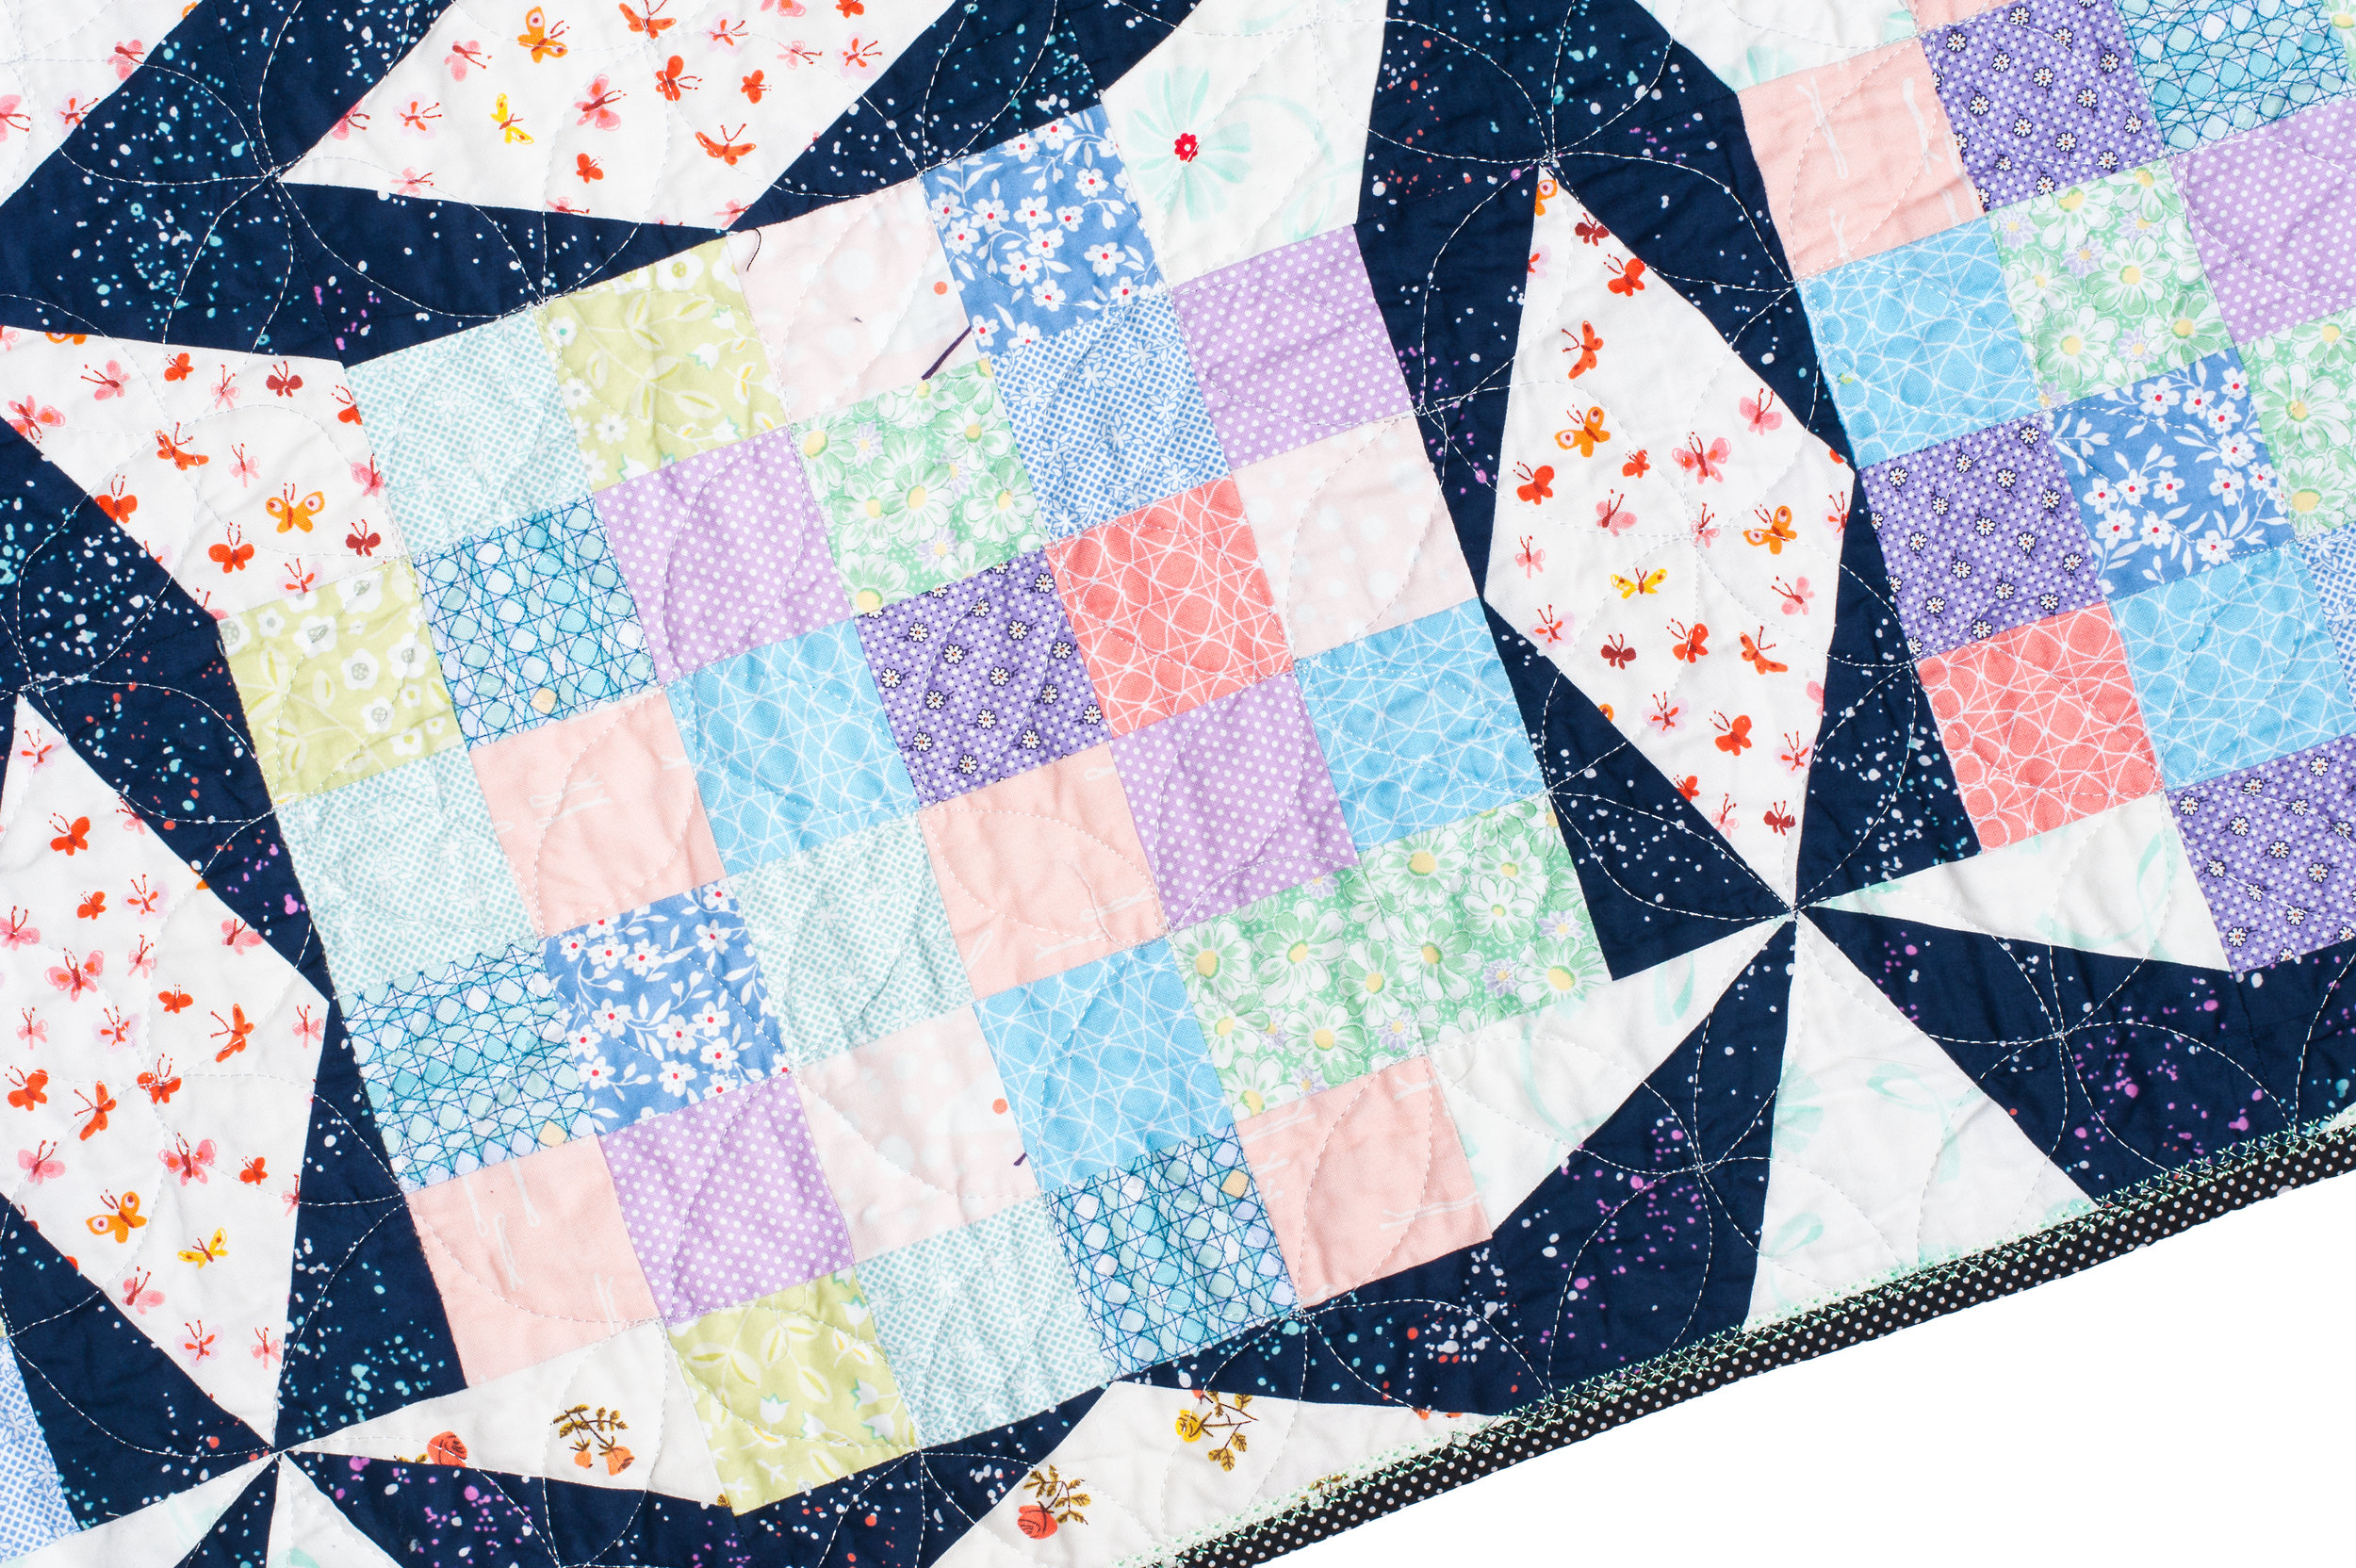 vintage quilt photography co-3.JPG